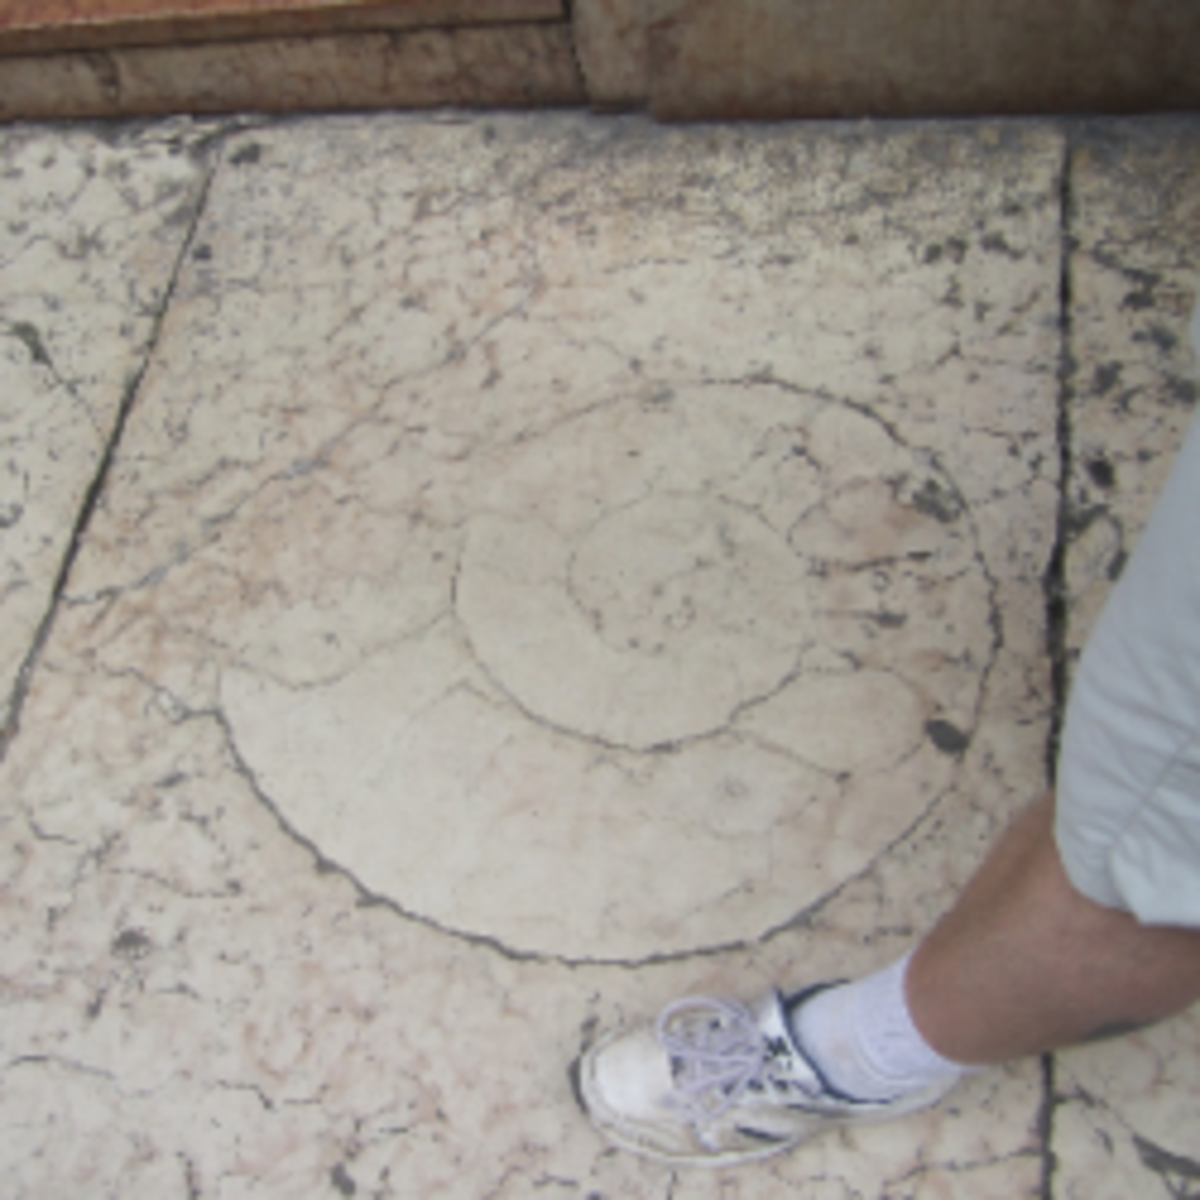 Ammonitic limestone on the sidewalk in Verona, Italy